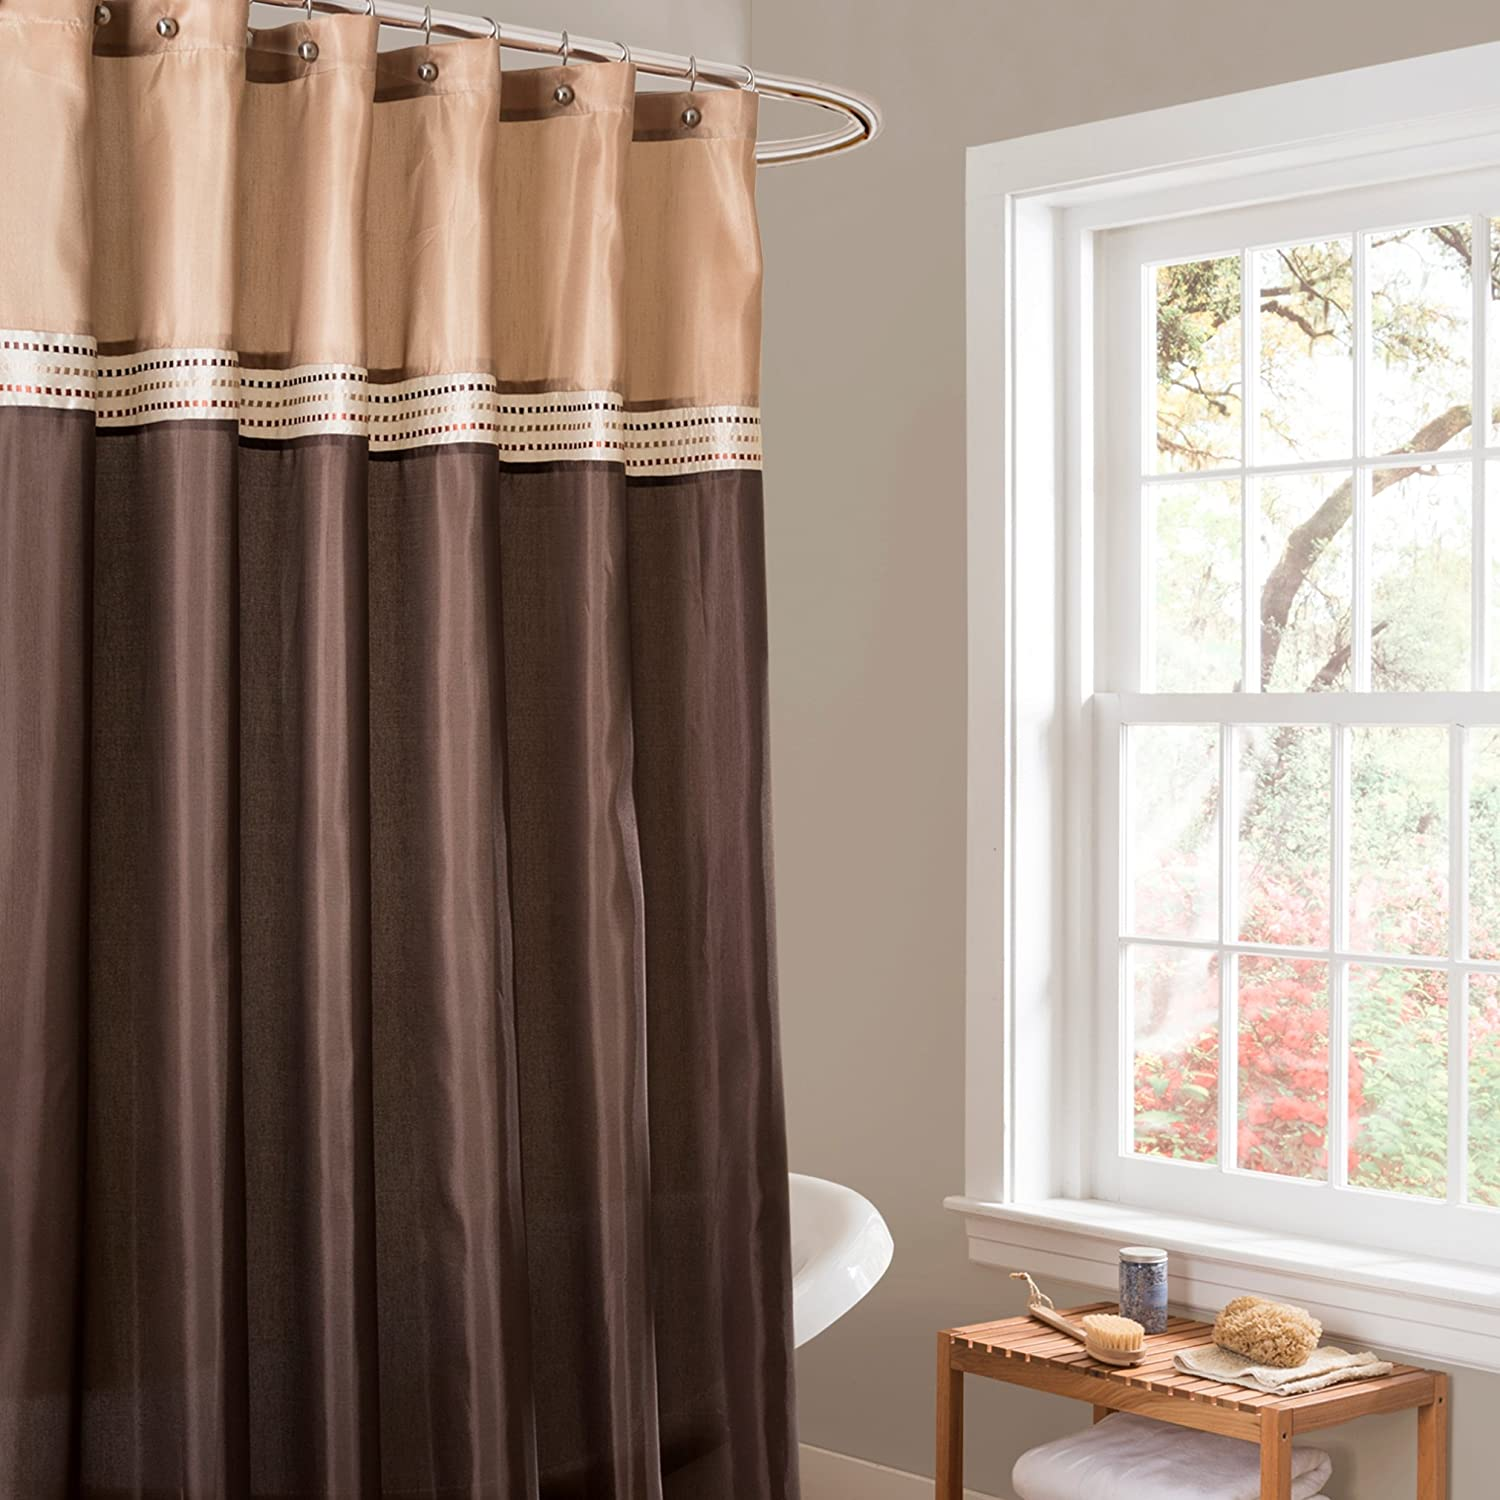 Amazon.com: Lush Decor Terra Shower Curtain, 72 by 72-Inch, Brown ...